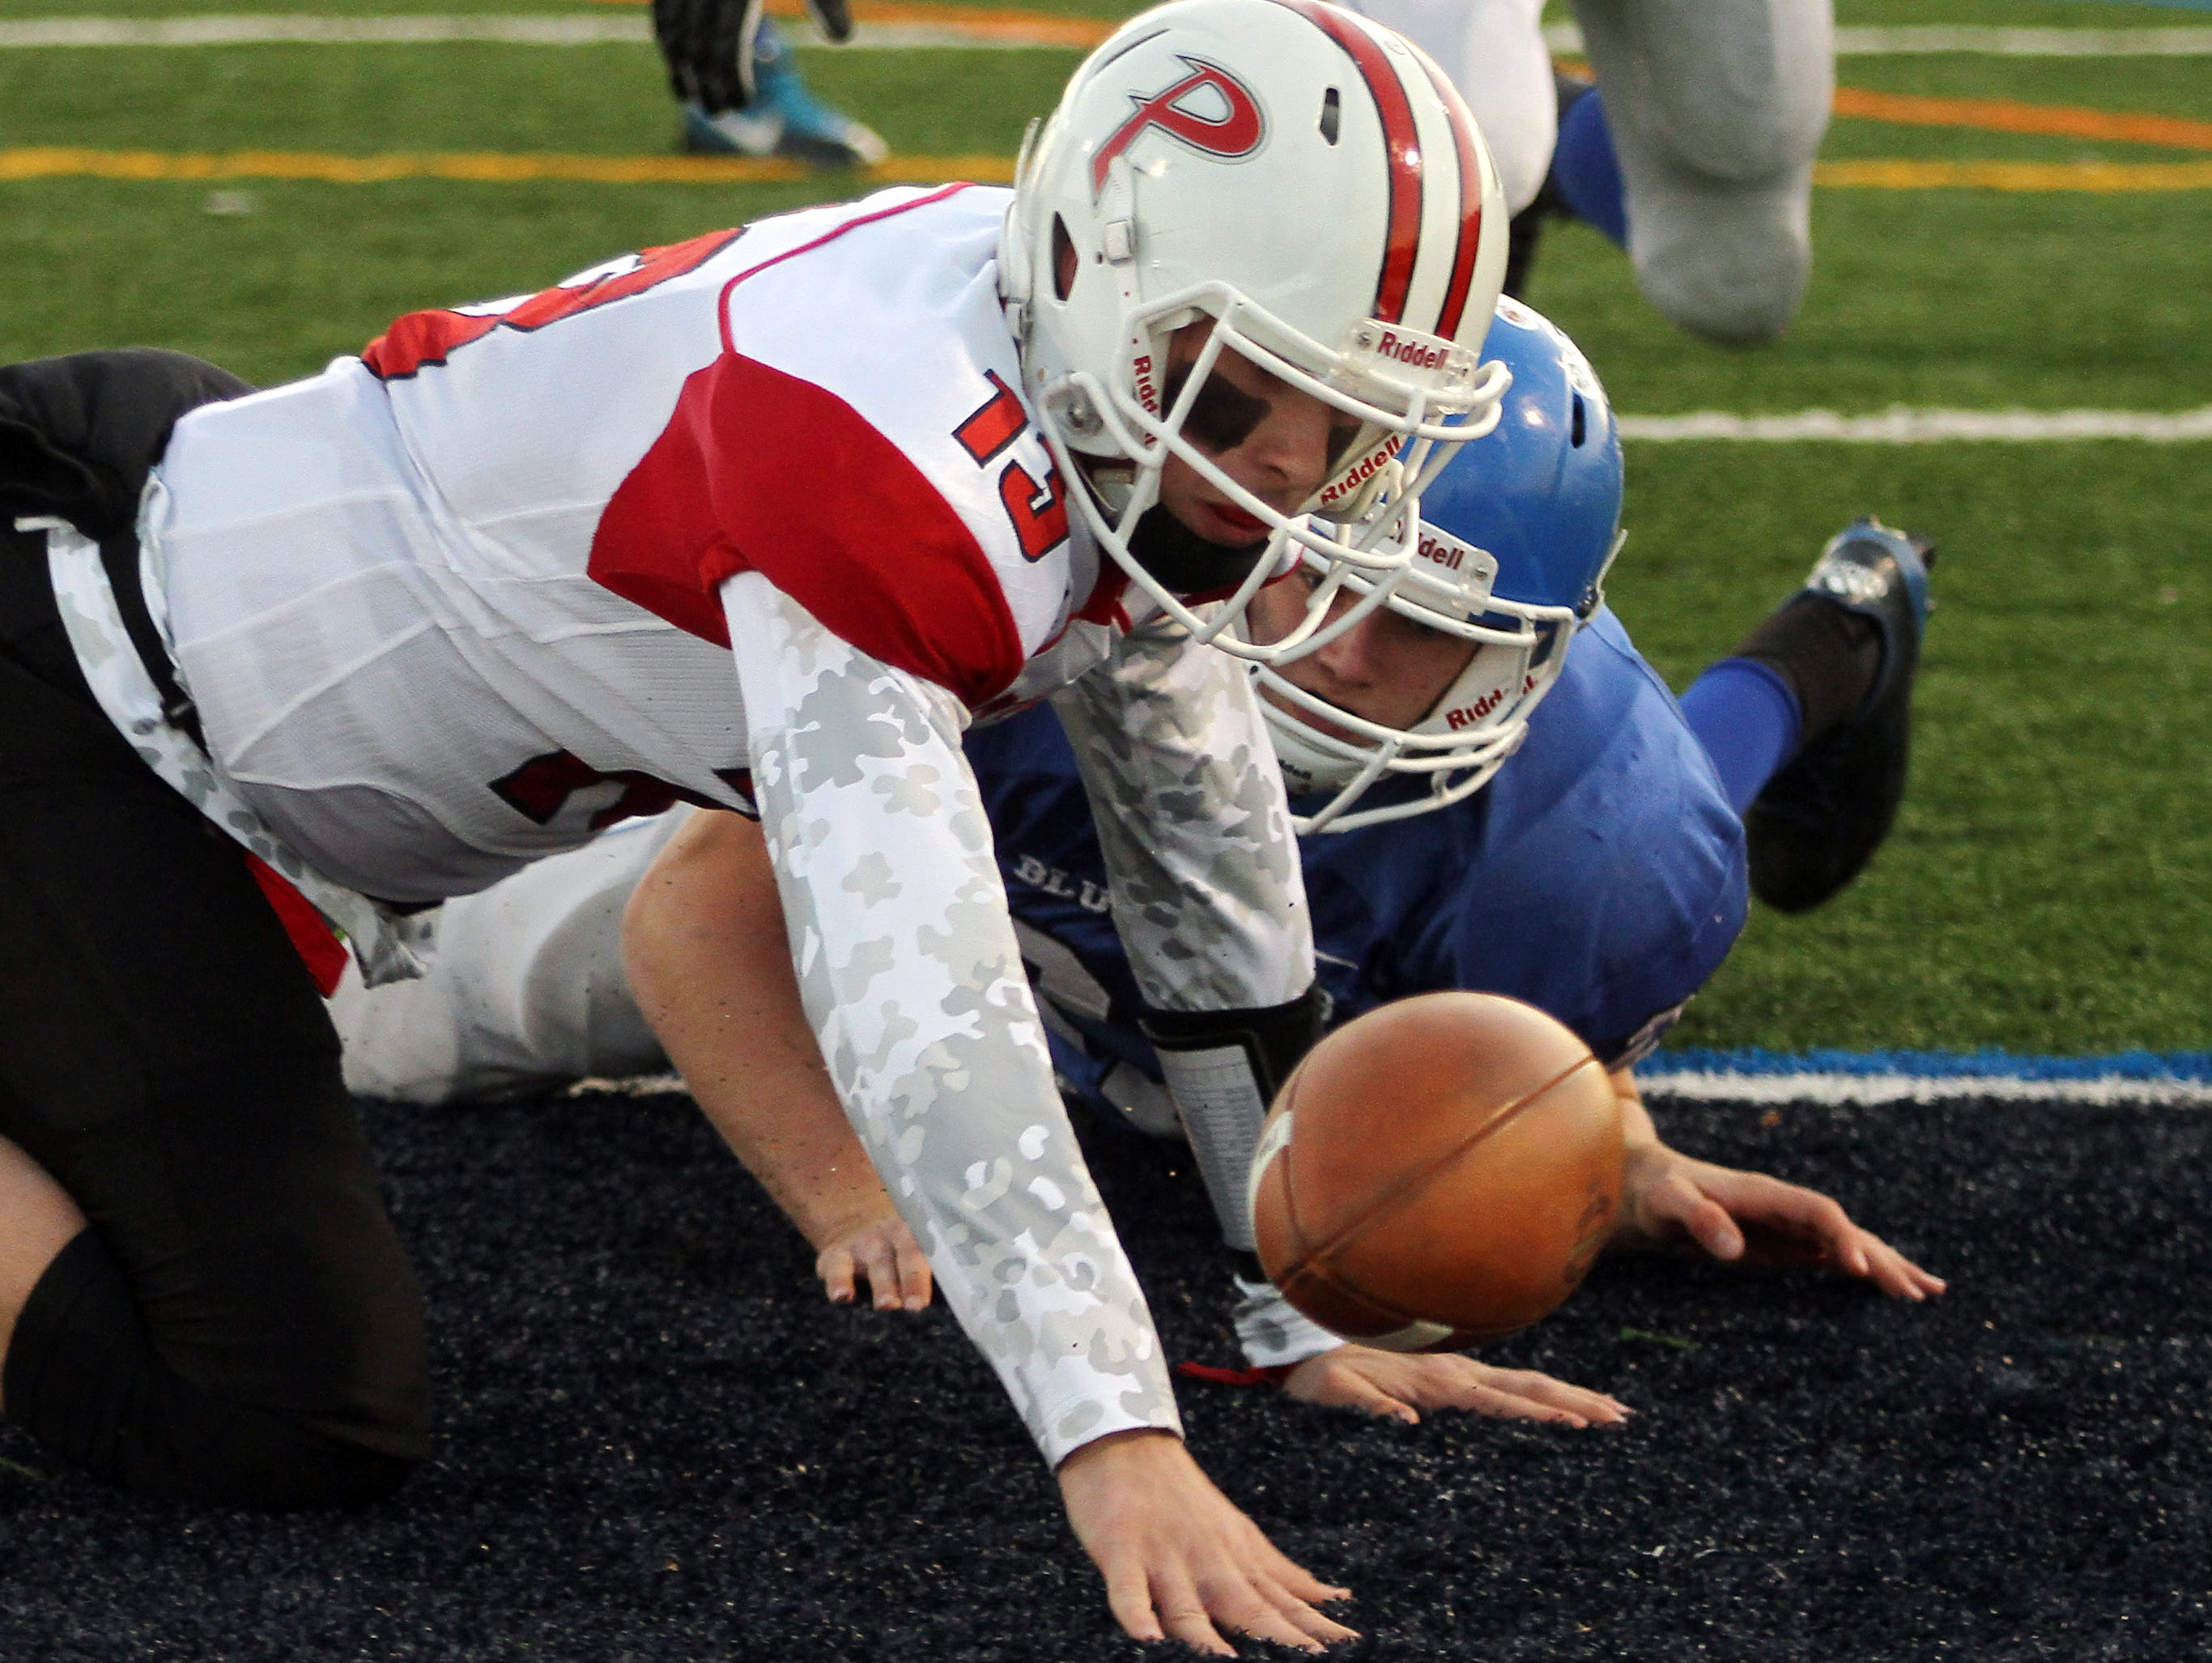 Palmyra quarterback Max Smyth and Shore Regional's Alex Johnson reach for the ball in the end zone after a Smyth fumble. The ball was recovered by Shore for a first half touchdown during the NJSIAA Central, Group 1 Championship game at Kean University Alumni Stadium. December 5, 2015, Union, NJ.